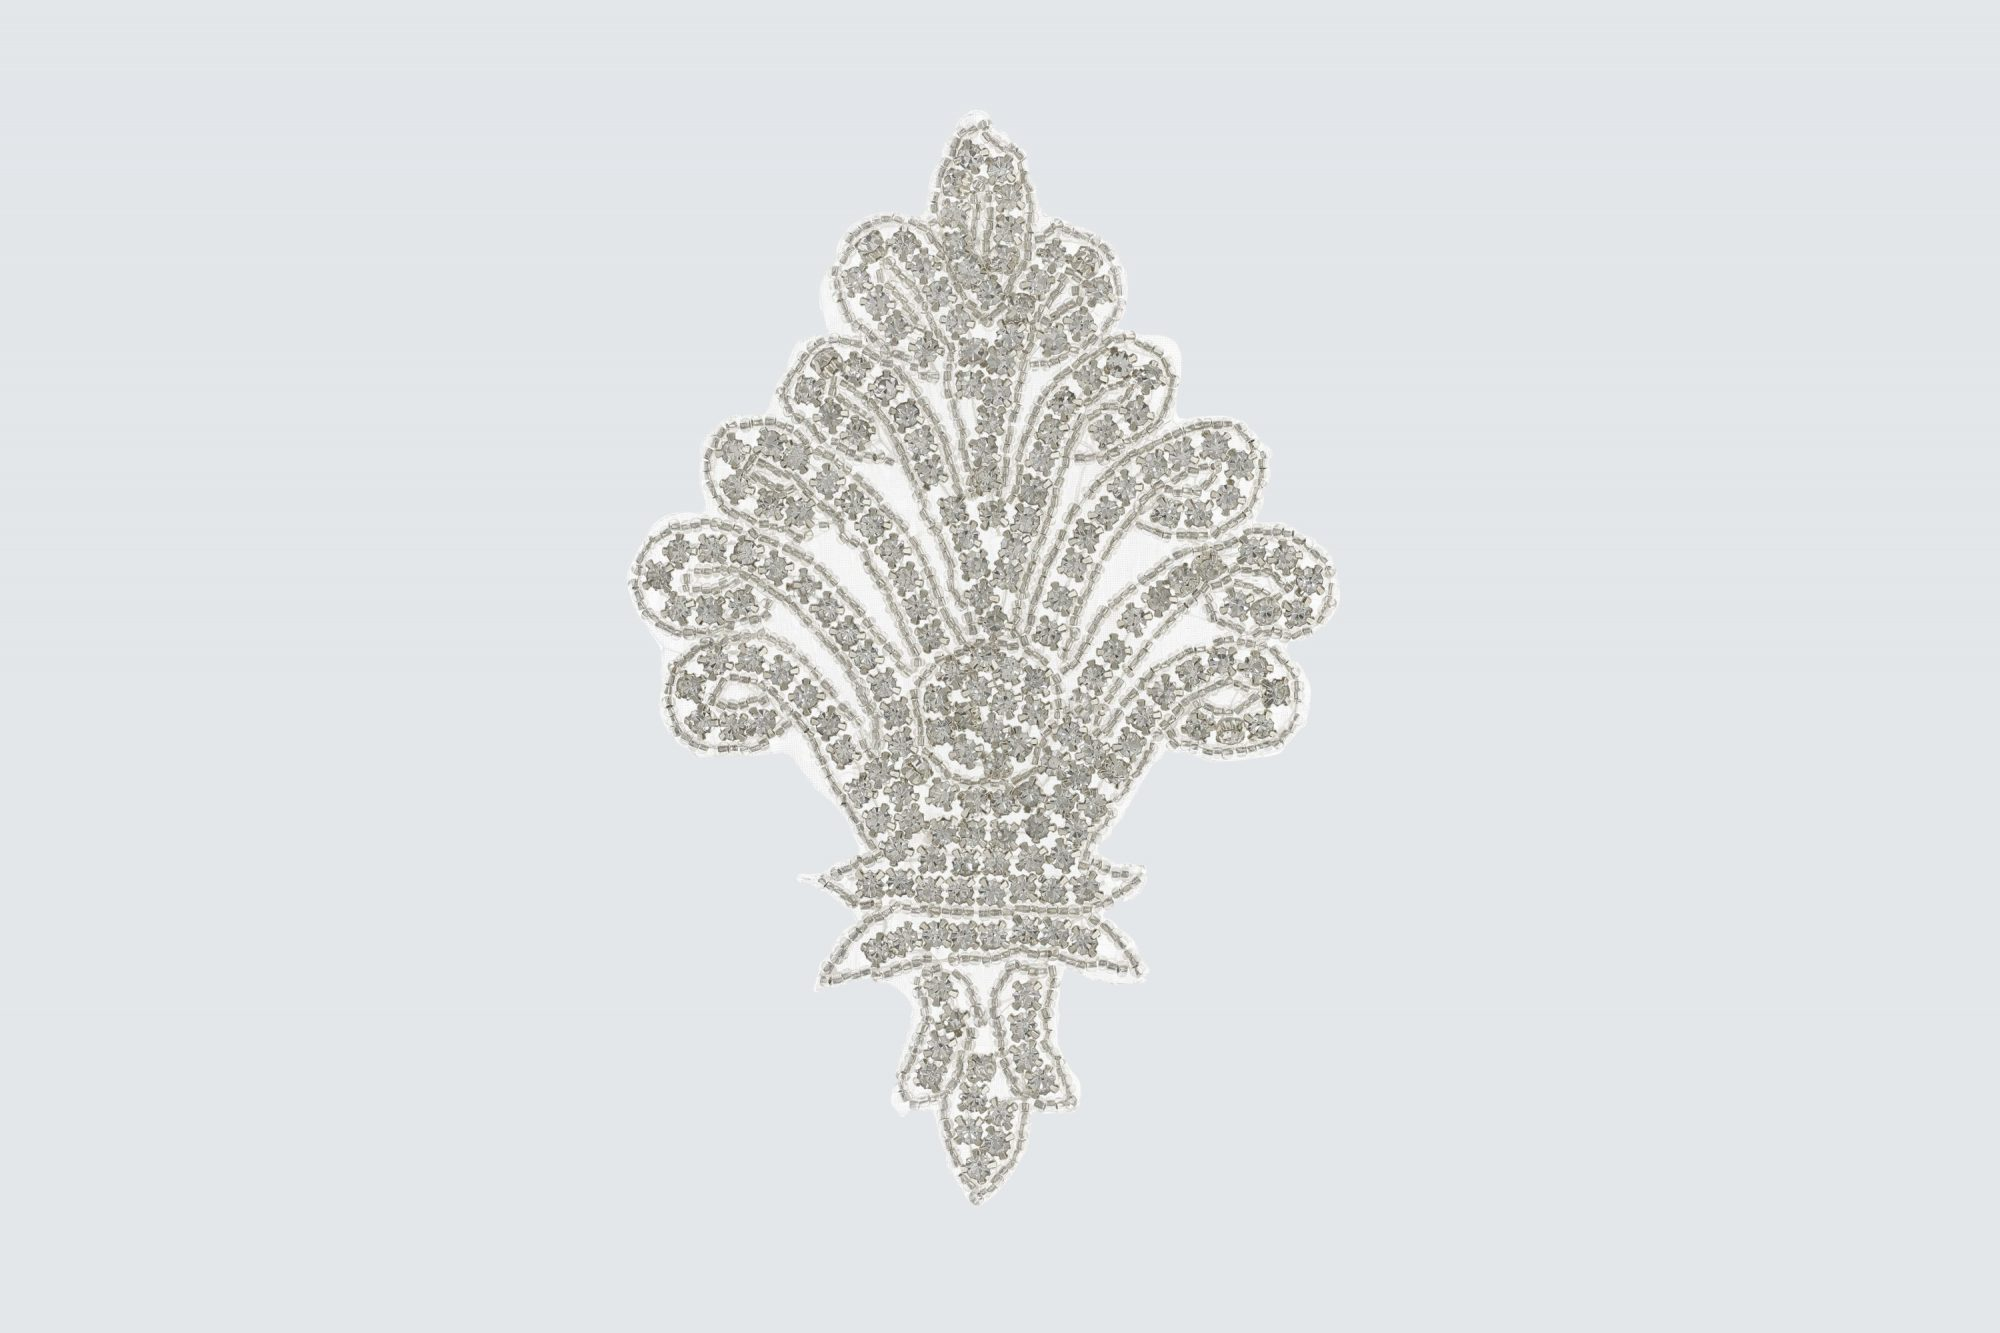 daytona trim clear crystal rhinestones with silver beads applique patch